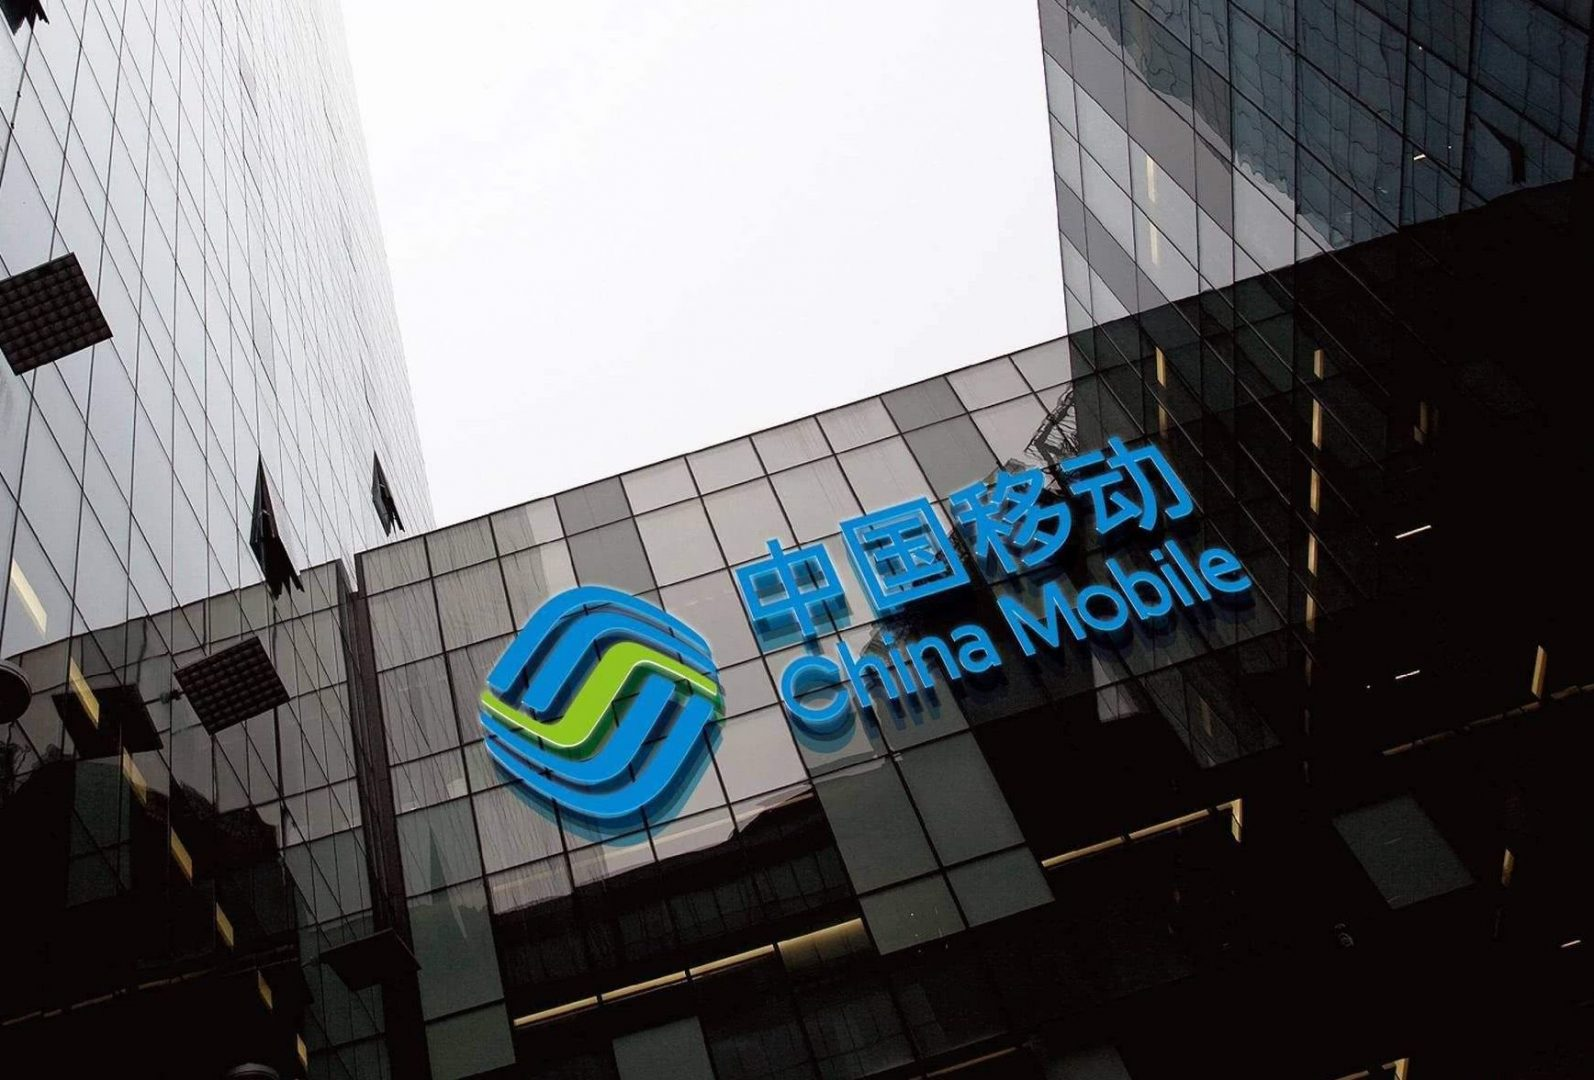 Briefing: China Mobile revenues decline for the first time since 2014